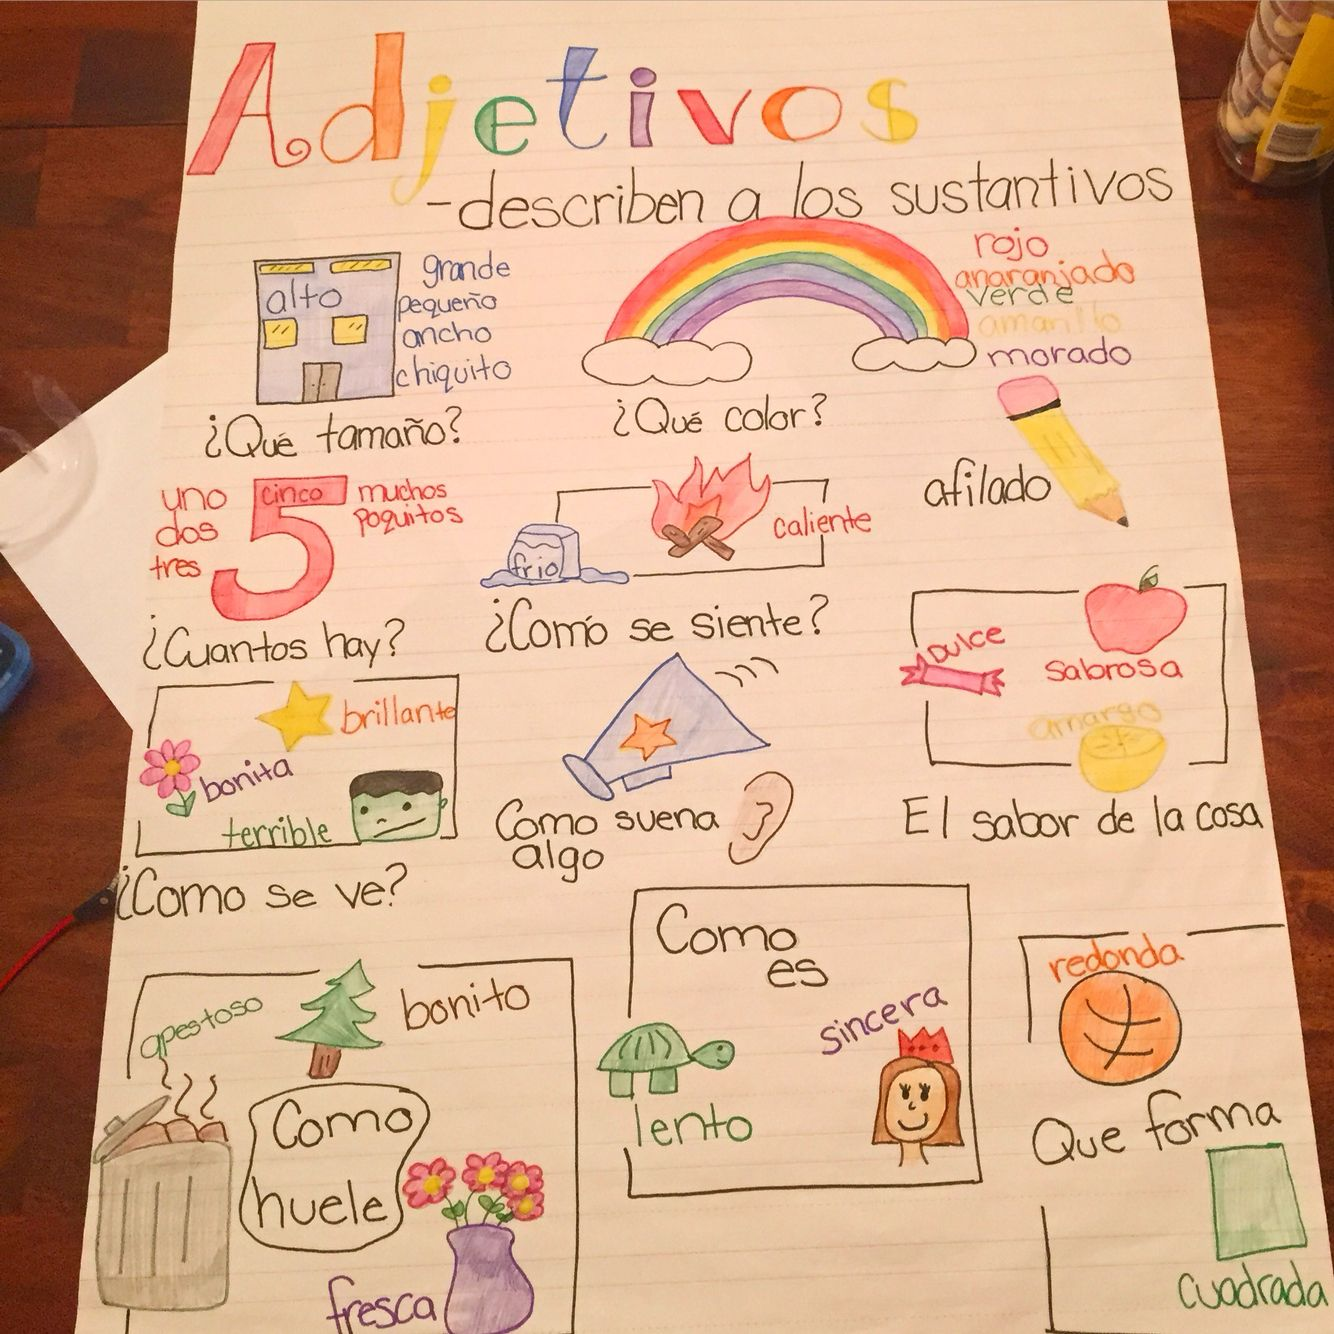 Adjective anchor chart. Adjetivos. Found this idea here on Pinterest so credit goes to the person wh